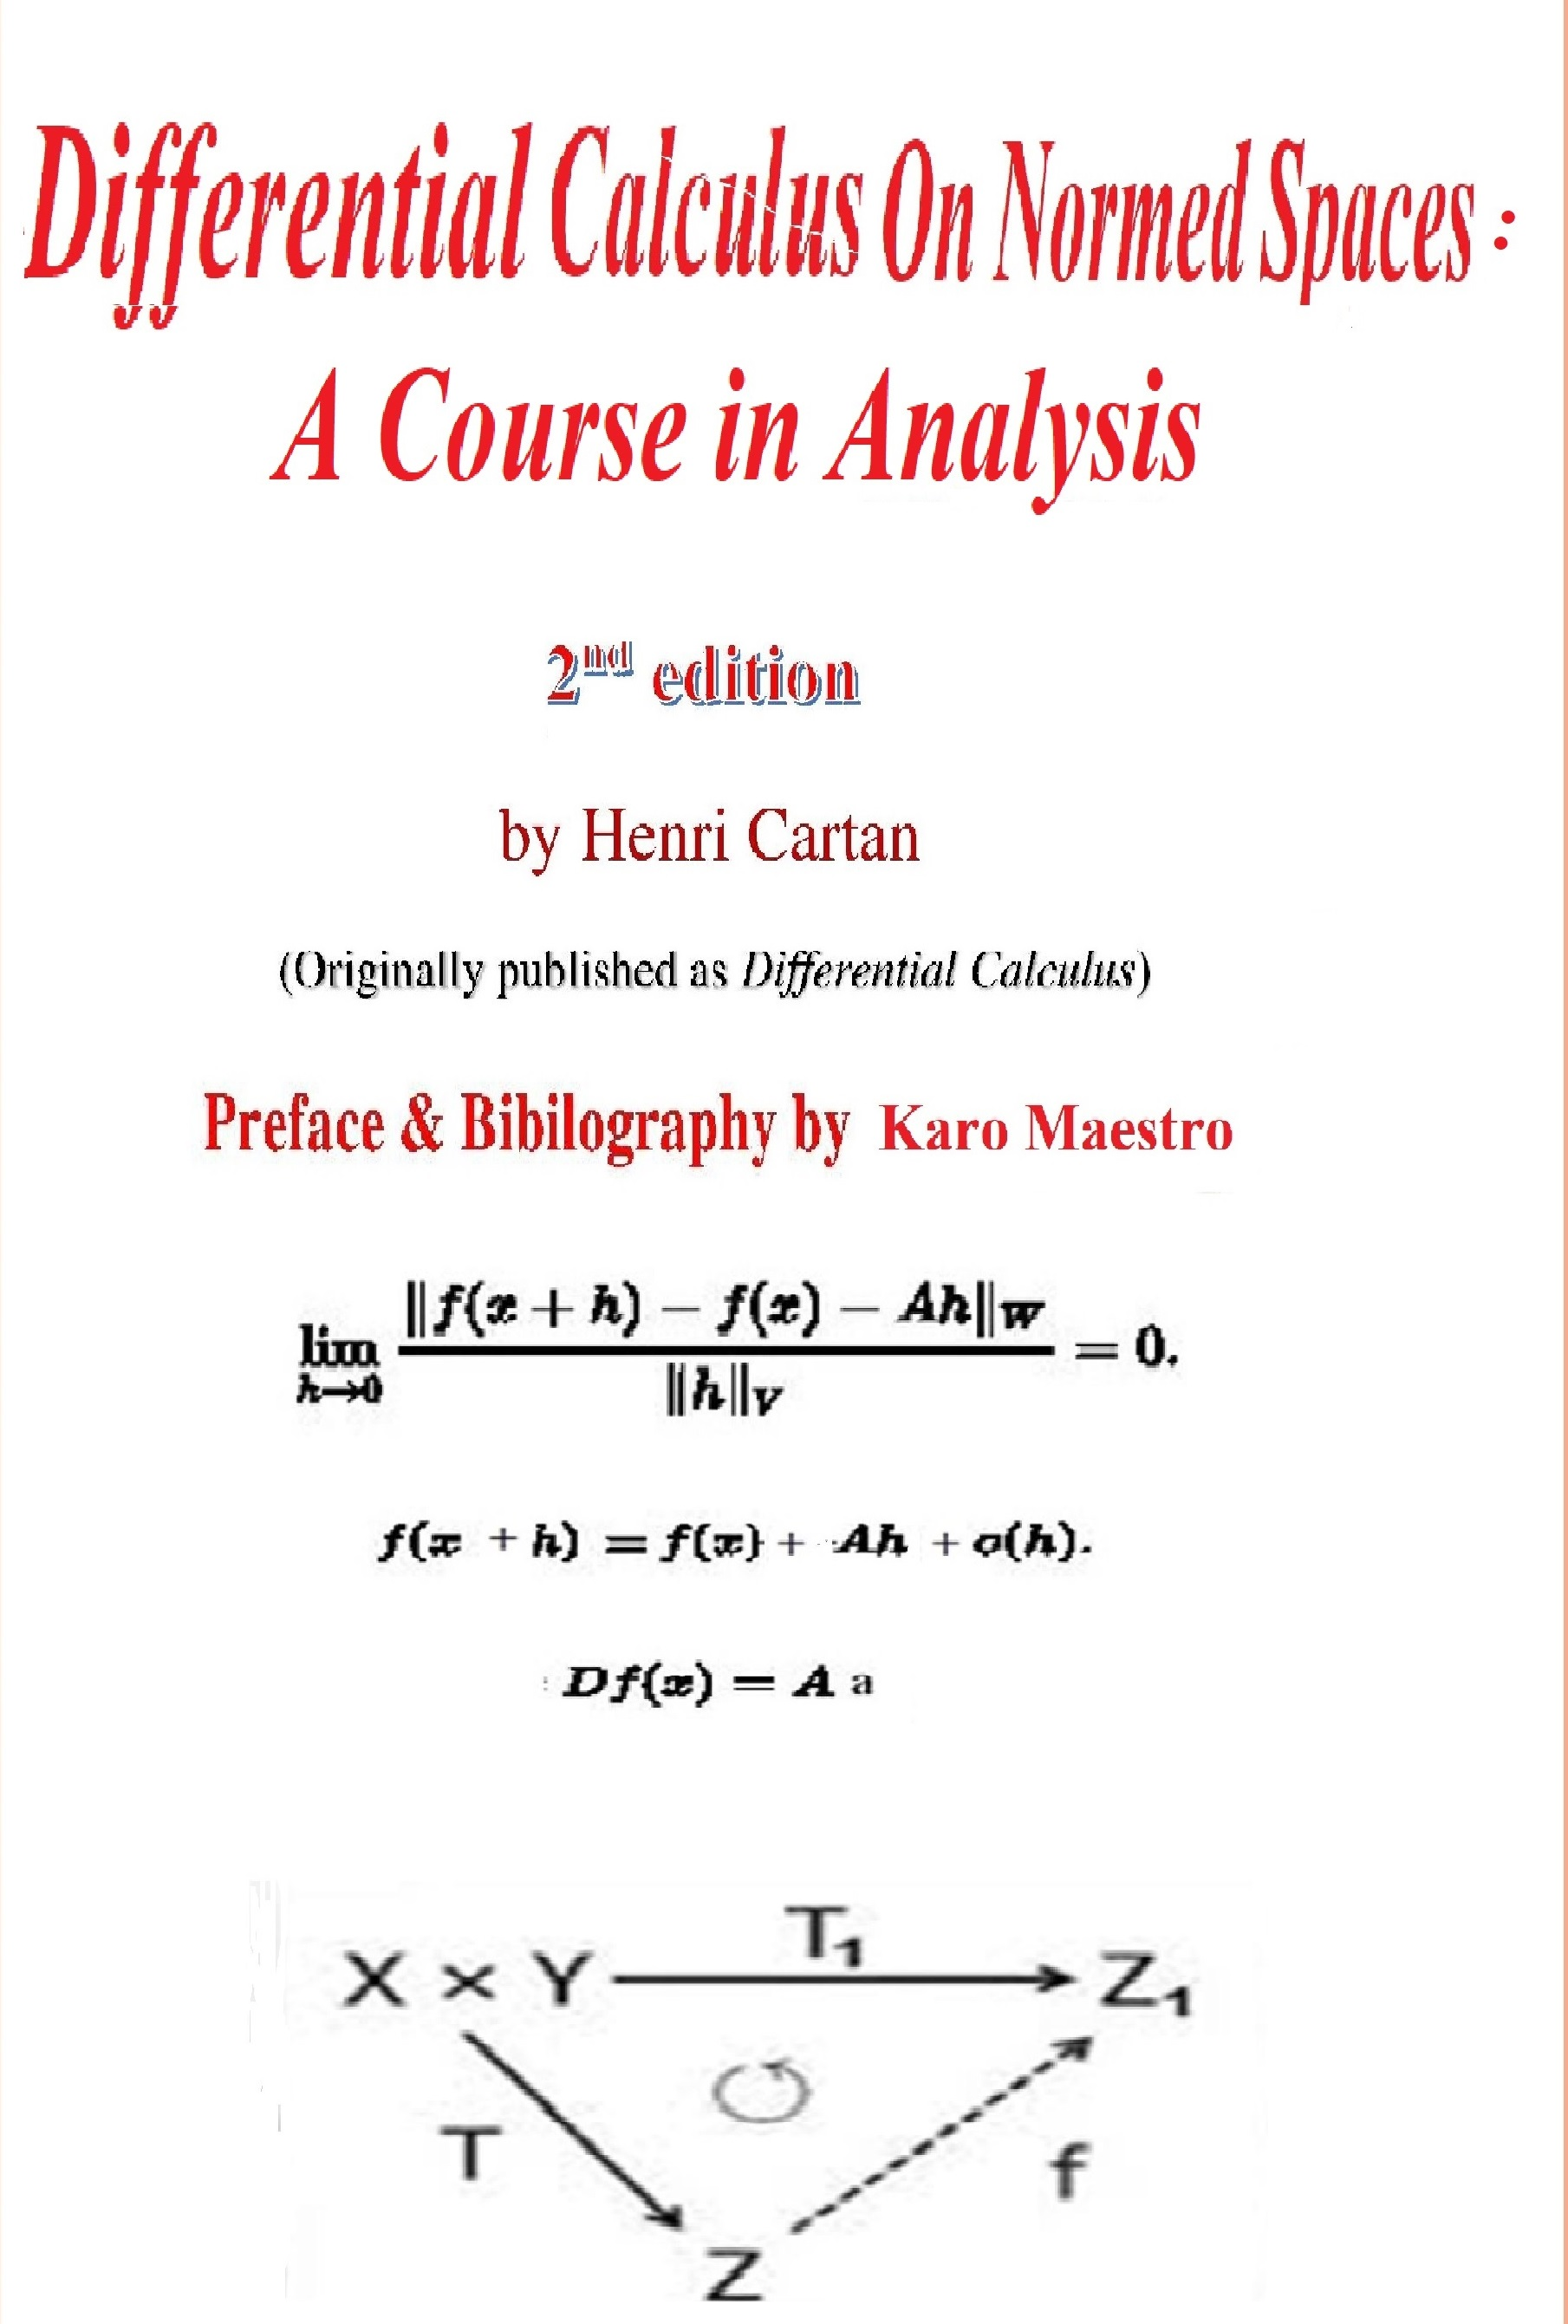 Text Differential Calculus On Normed Spaces By Cartan 2nd Ed